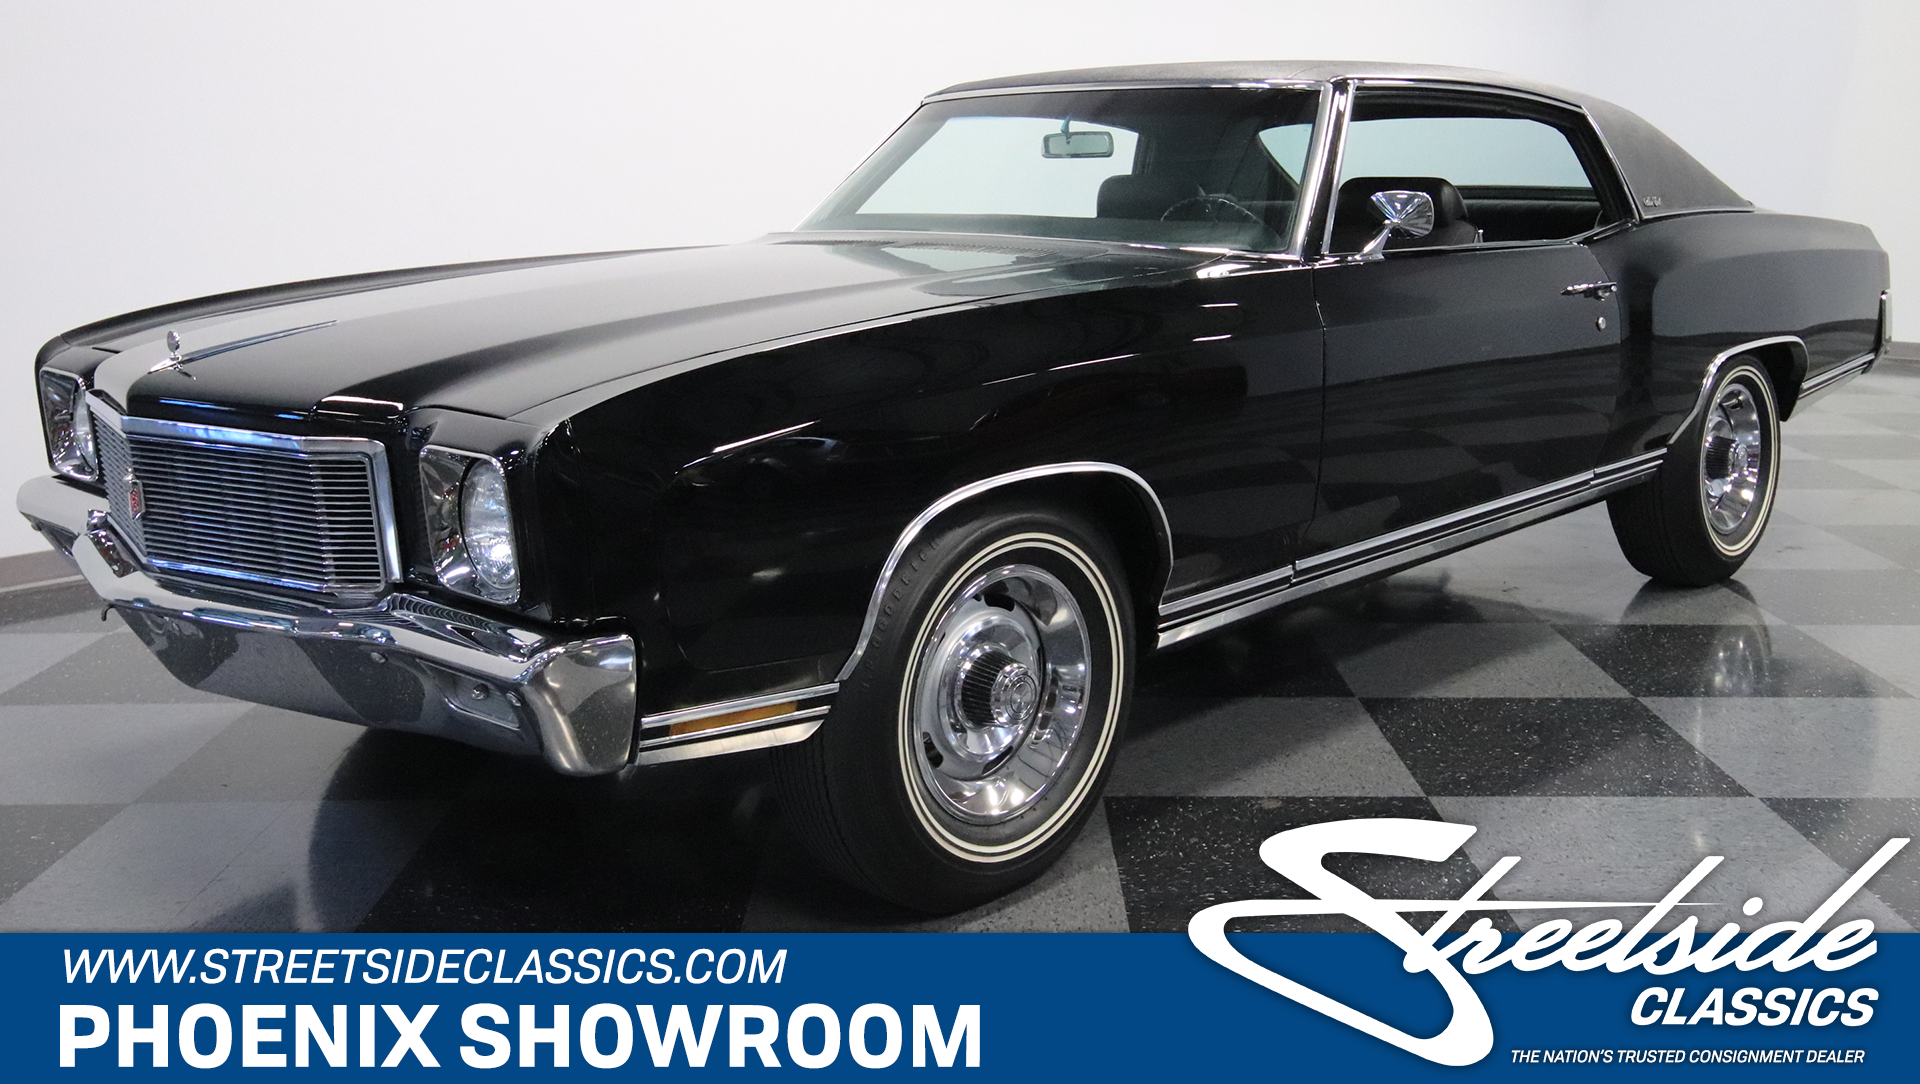 8880257a3322ee_hd_1971-chevrolet-monte-carlo Take A Look About 1980 Monte Carlo for Sale with Mesmerizing Photos Cars Review